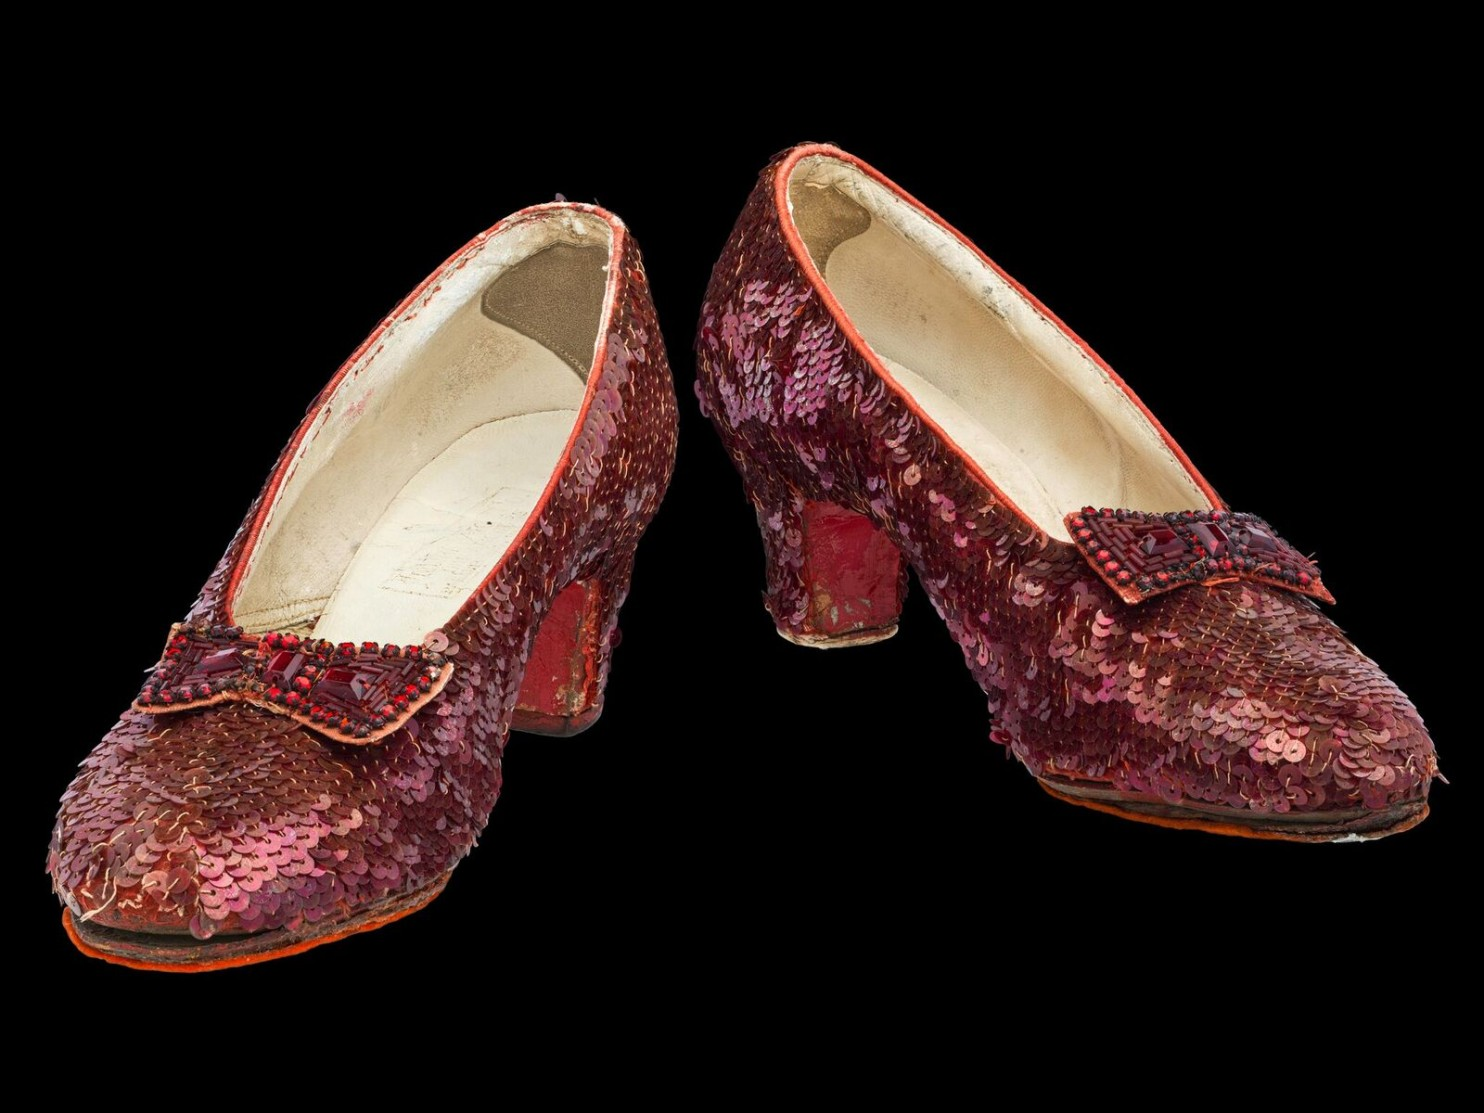 Ruby slippers, 'The Wizard of Oz.'